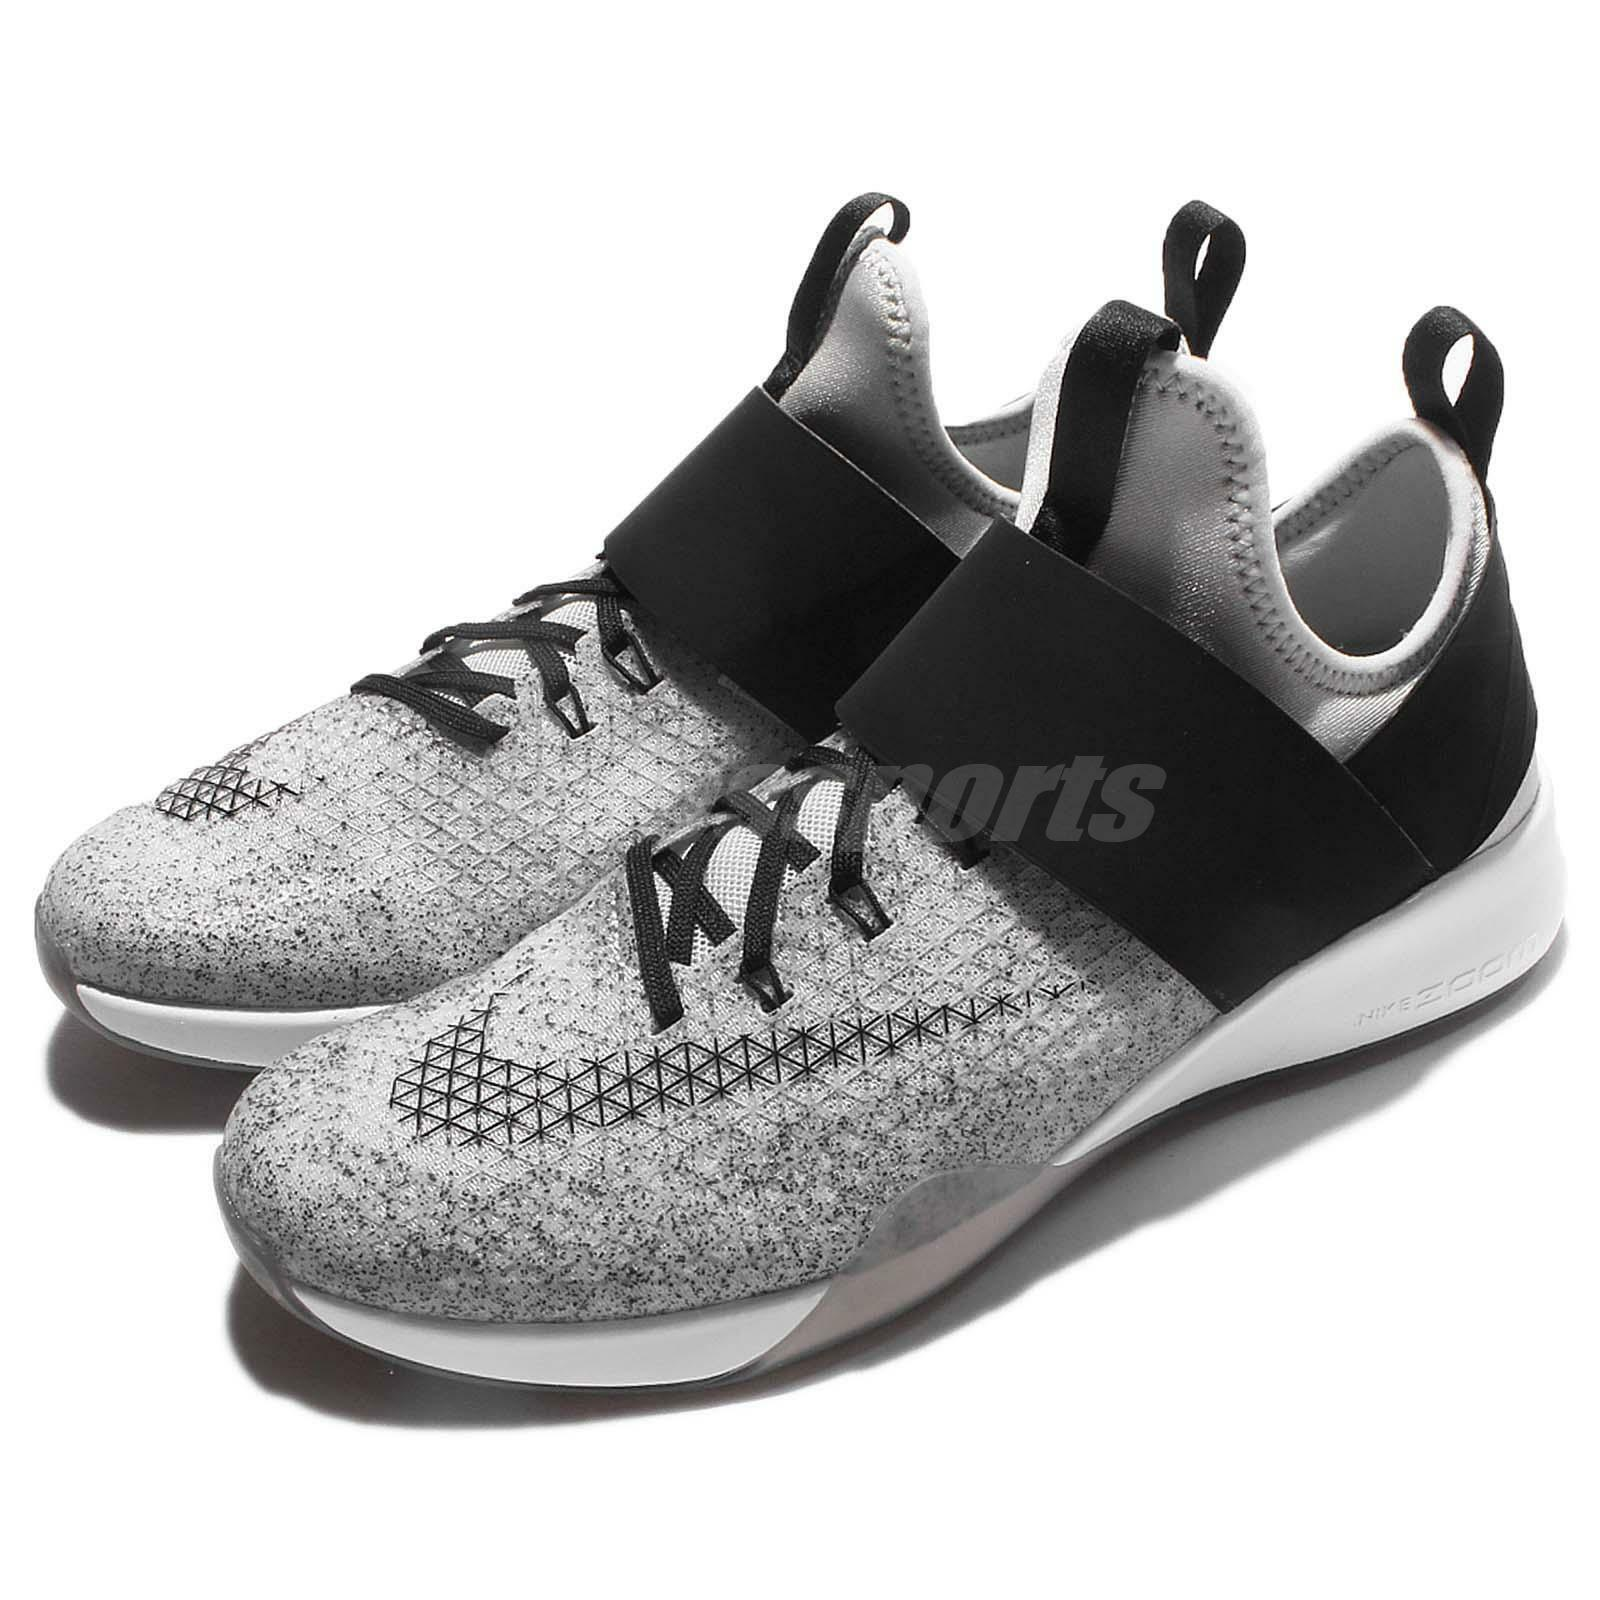 1256c5430b7c6 Wmns Nike Air Zoom Strong Strong Strong Grey Black Women Training Shoes  Trainers 843975-100 78711e